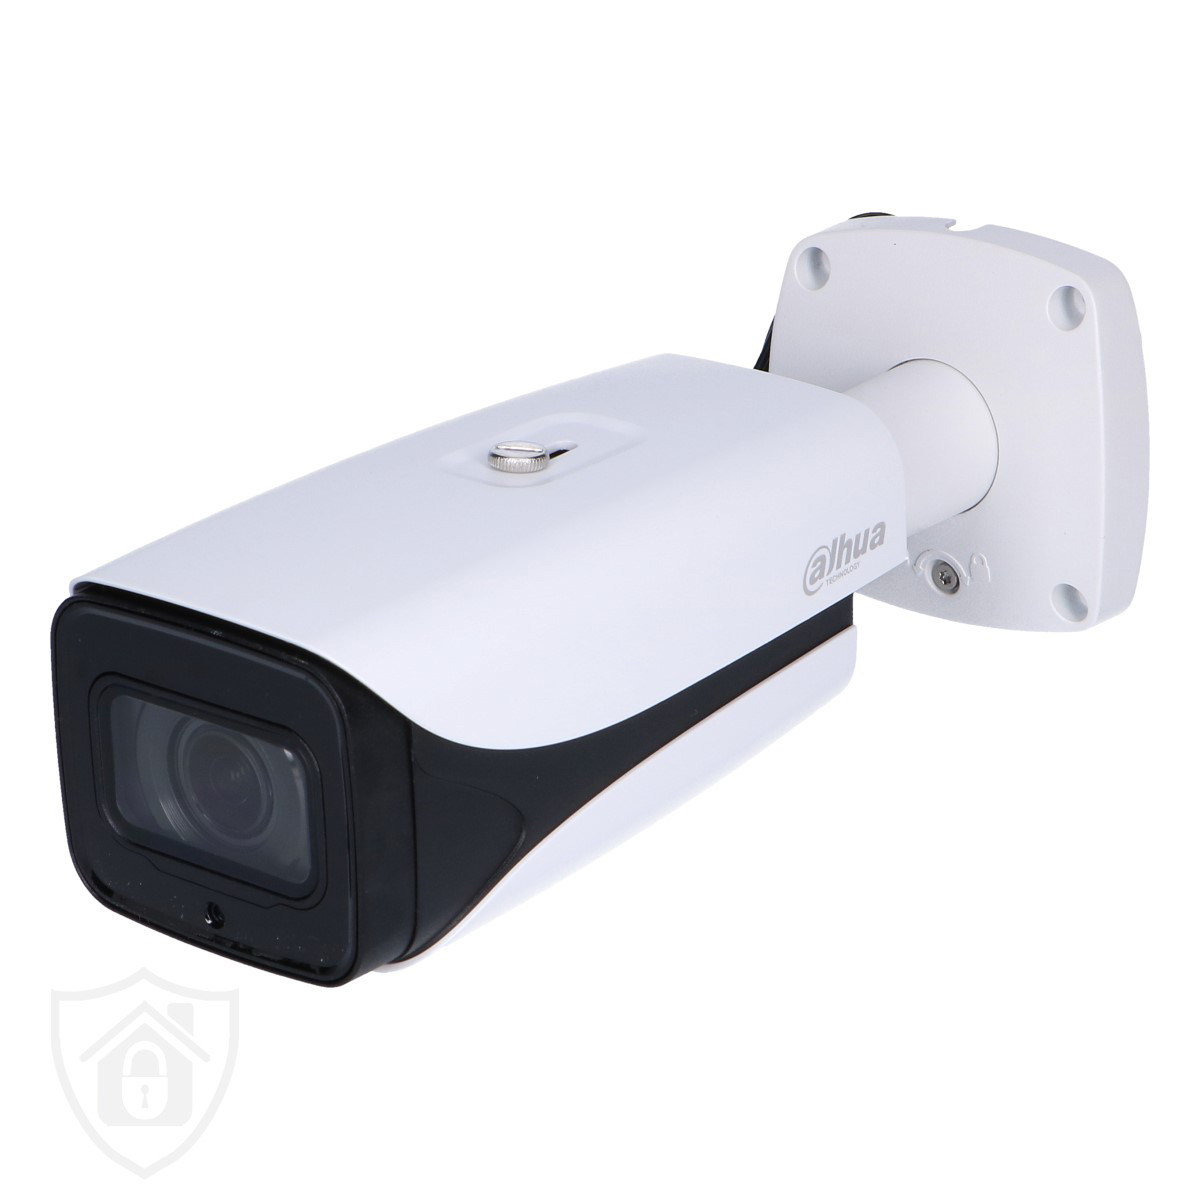 Kamera IP ECO-SAVVY 3.0 6MP, 2.7-13.5mm, IR 50m